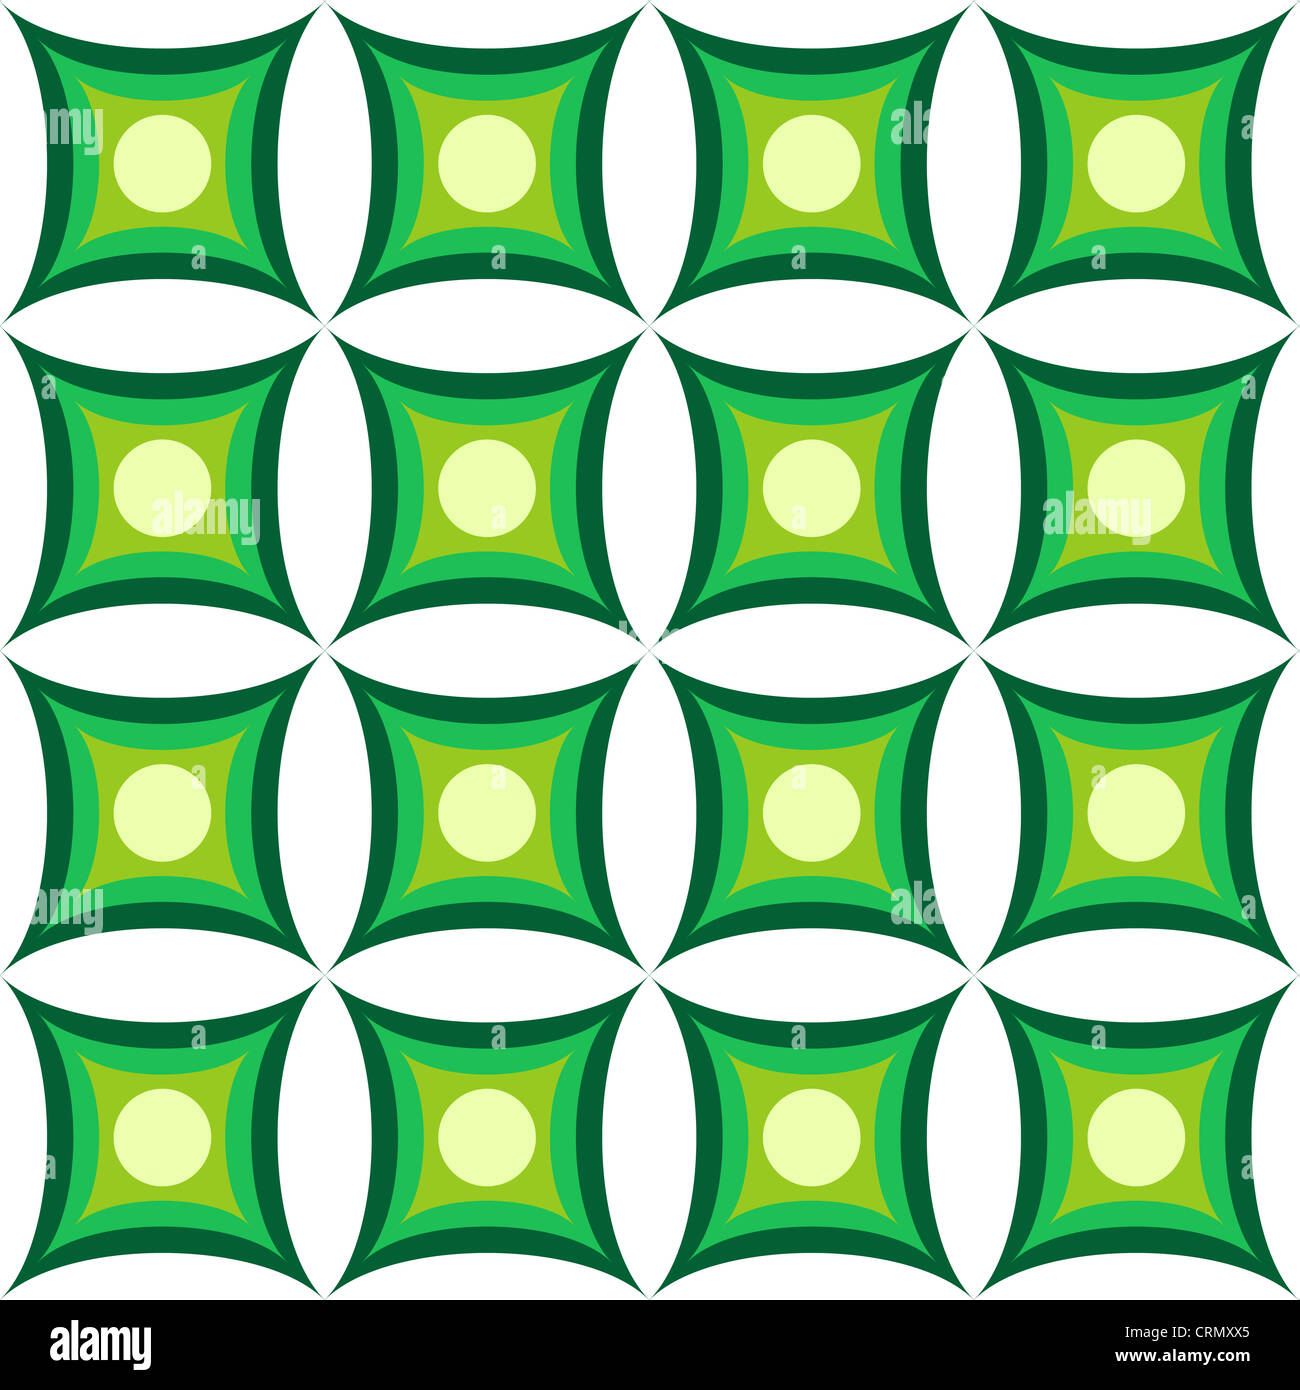 Seamless retro pattern in green and white Stock Photo